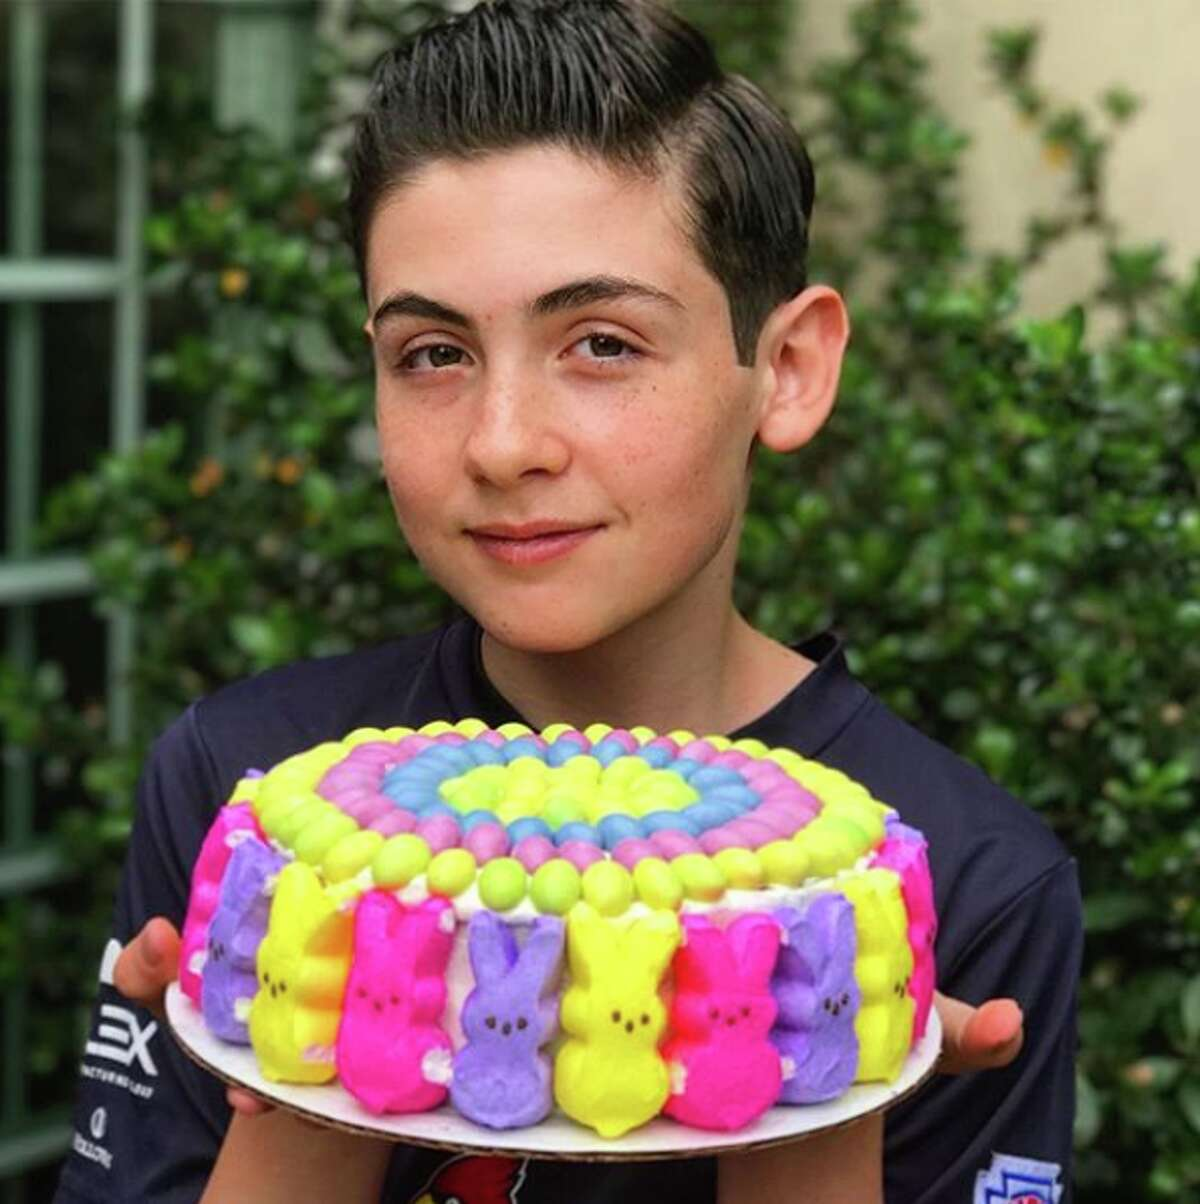 Ryan Wilson, a 14-year-old from Danville, Calif., bakes fantastic cakes, the tutorials for which he posts regularly on YouTube and Instagram.